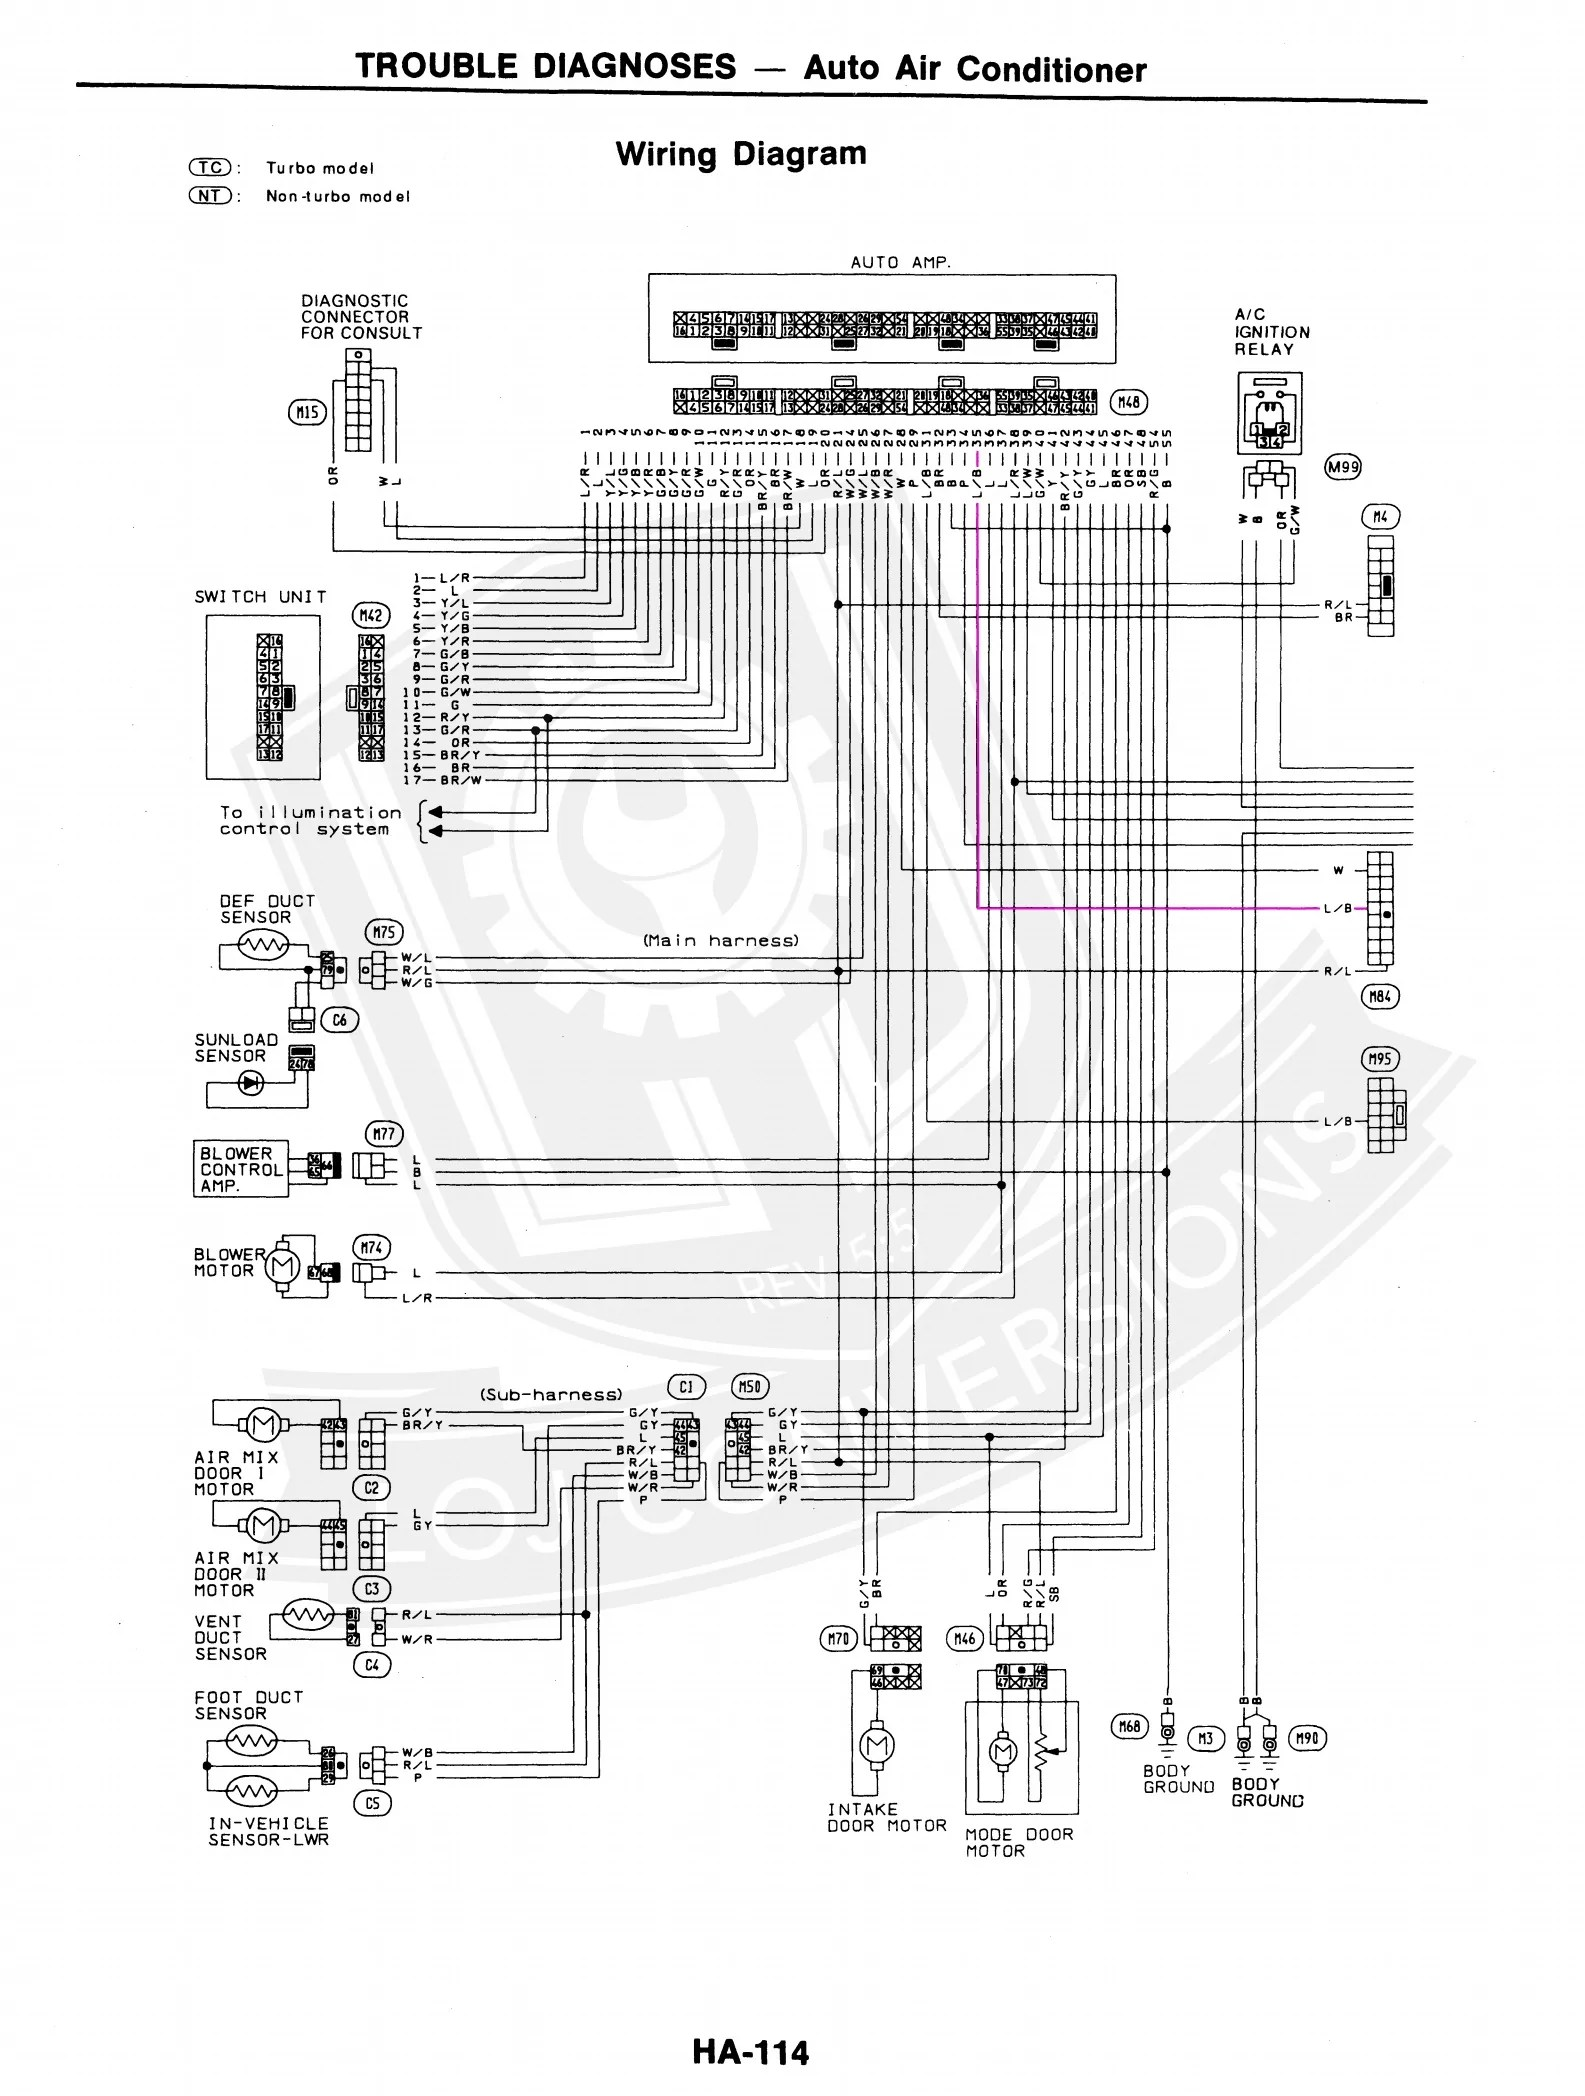 wiring diagram 1985 300zx wiring diagram compilation 1985 nissan 300zx wiring harness 1985 circuit diagrams [ 1585 x 2096 Pixel ]